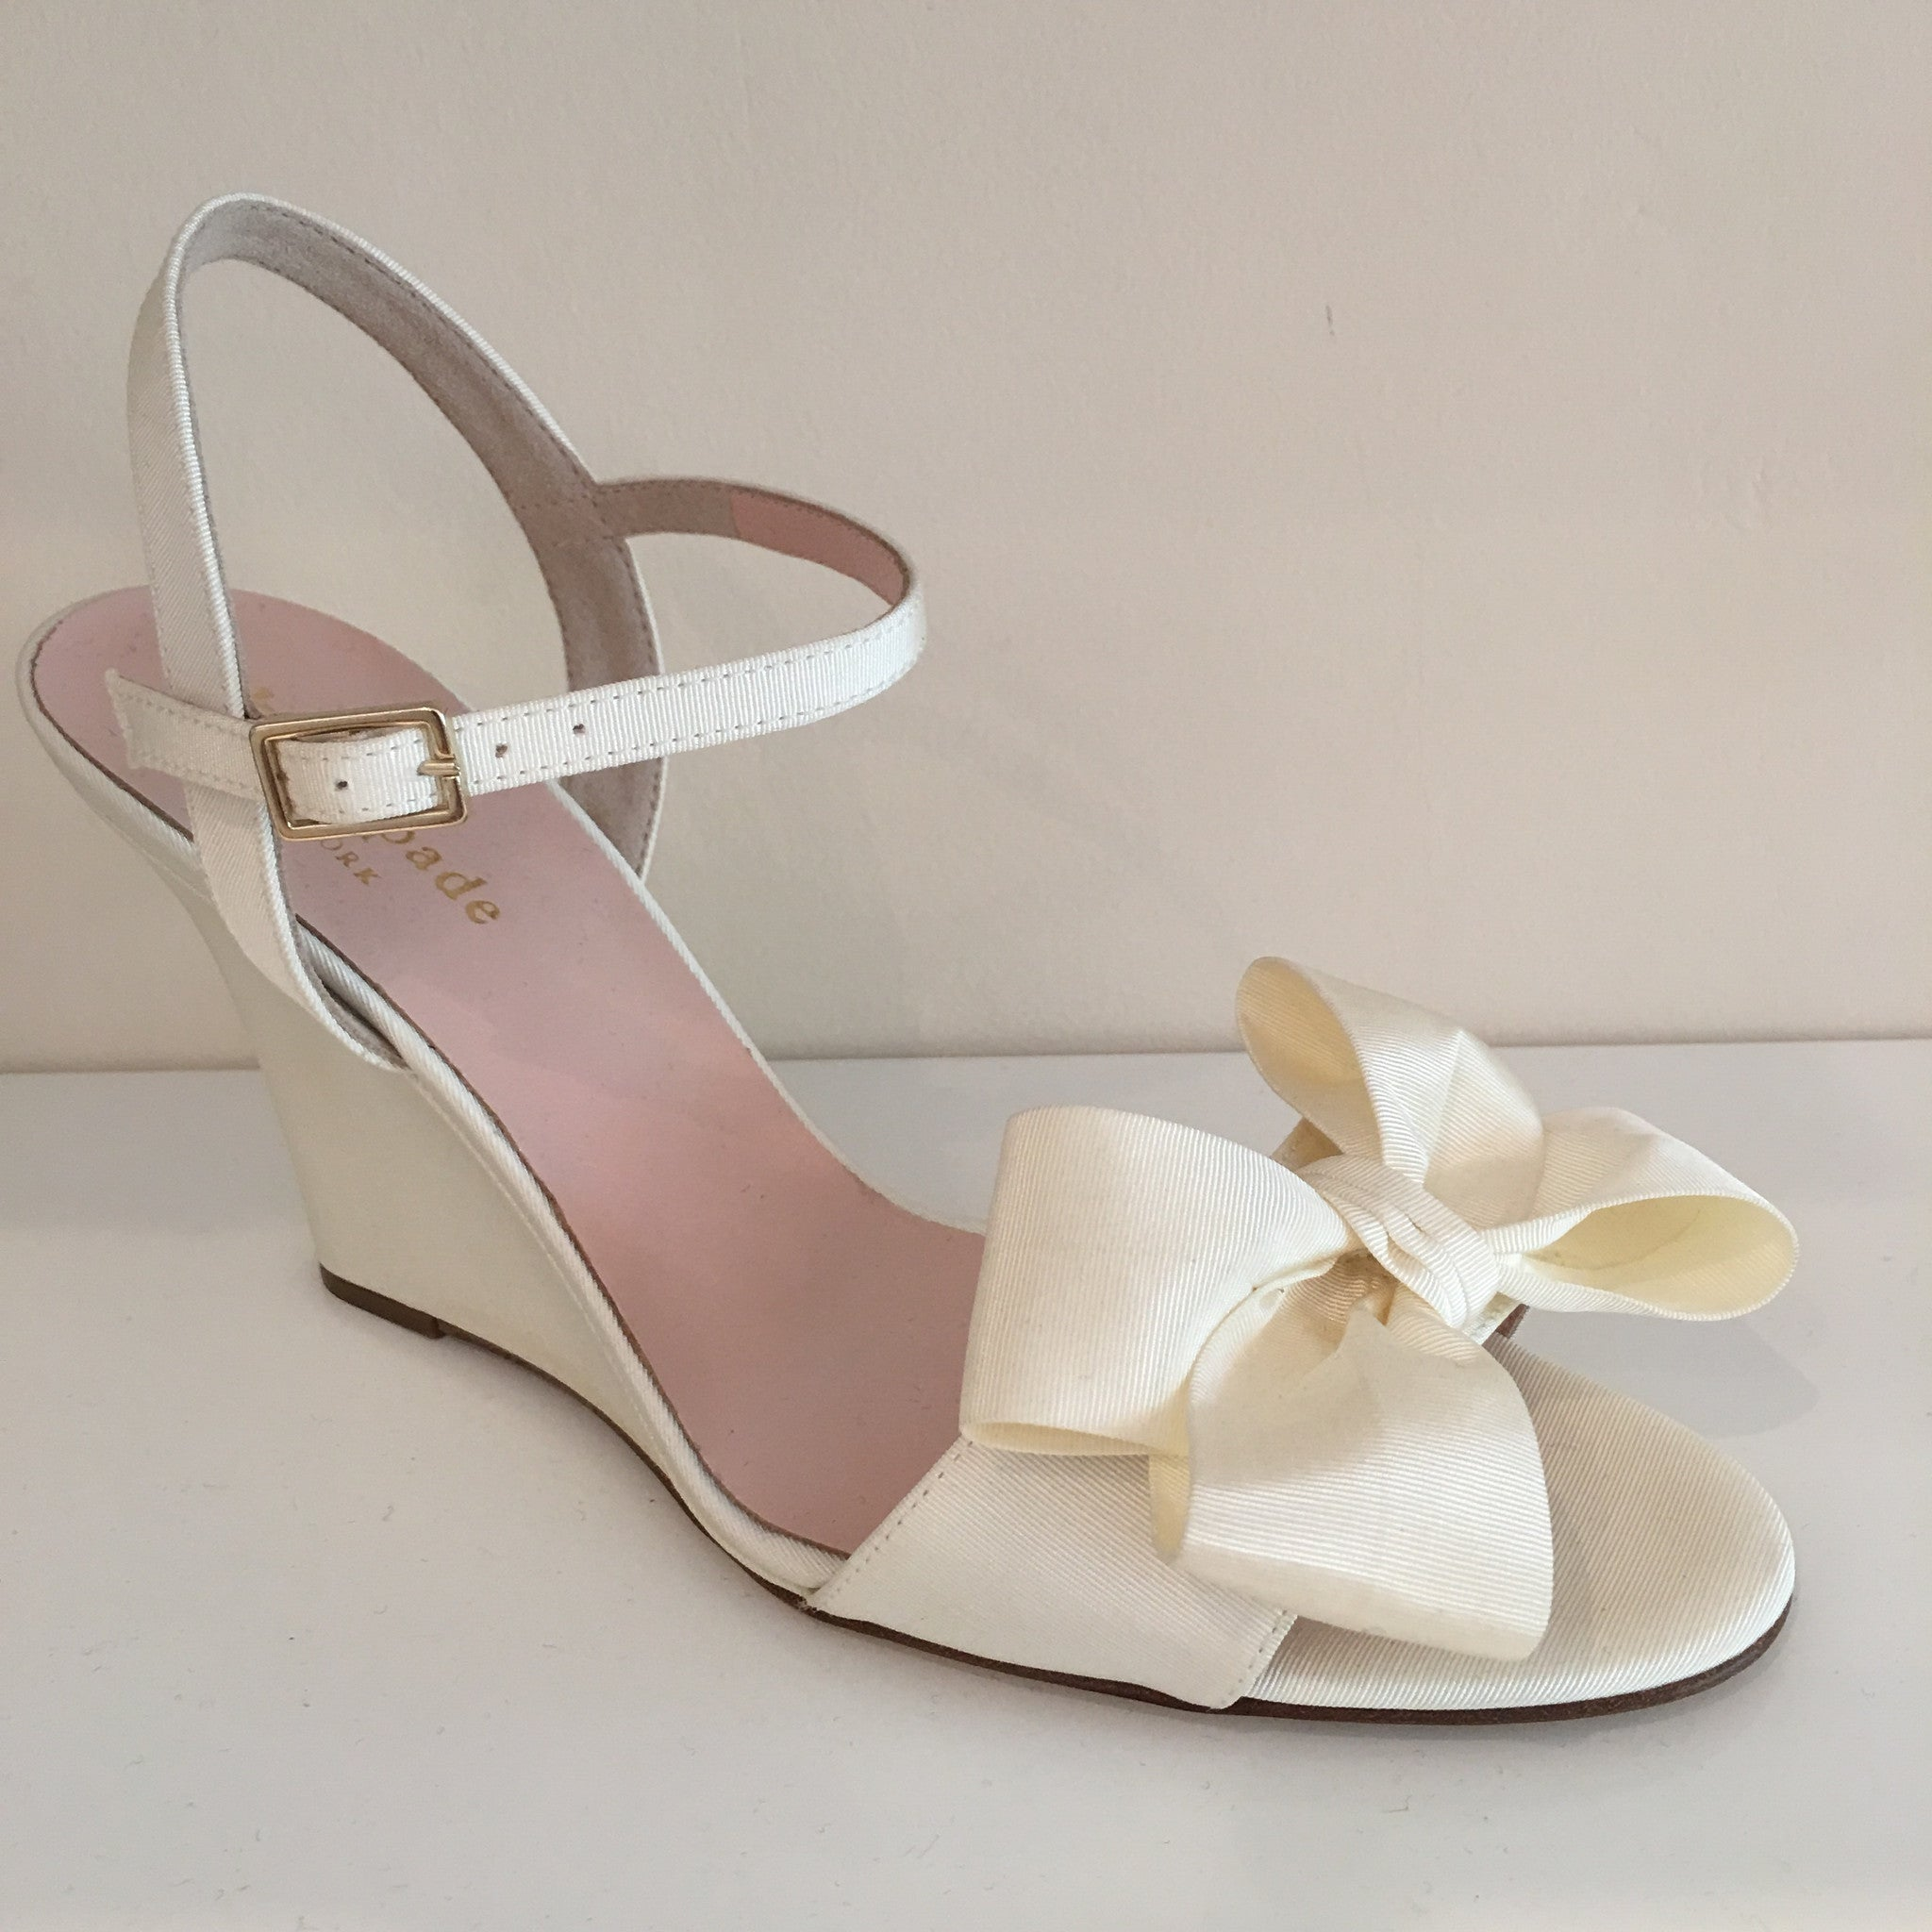 0c57d16c5f9 Iballa by Kate Spade New York - Blossom Shoes and Such